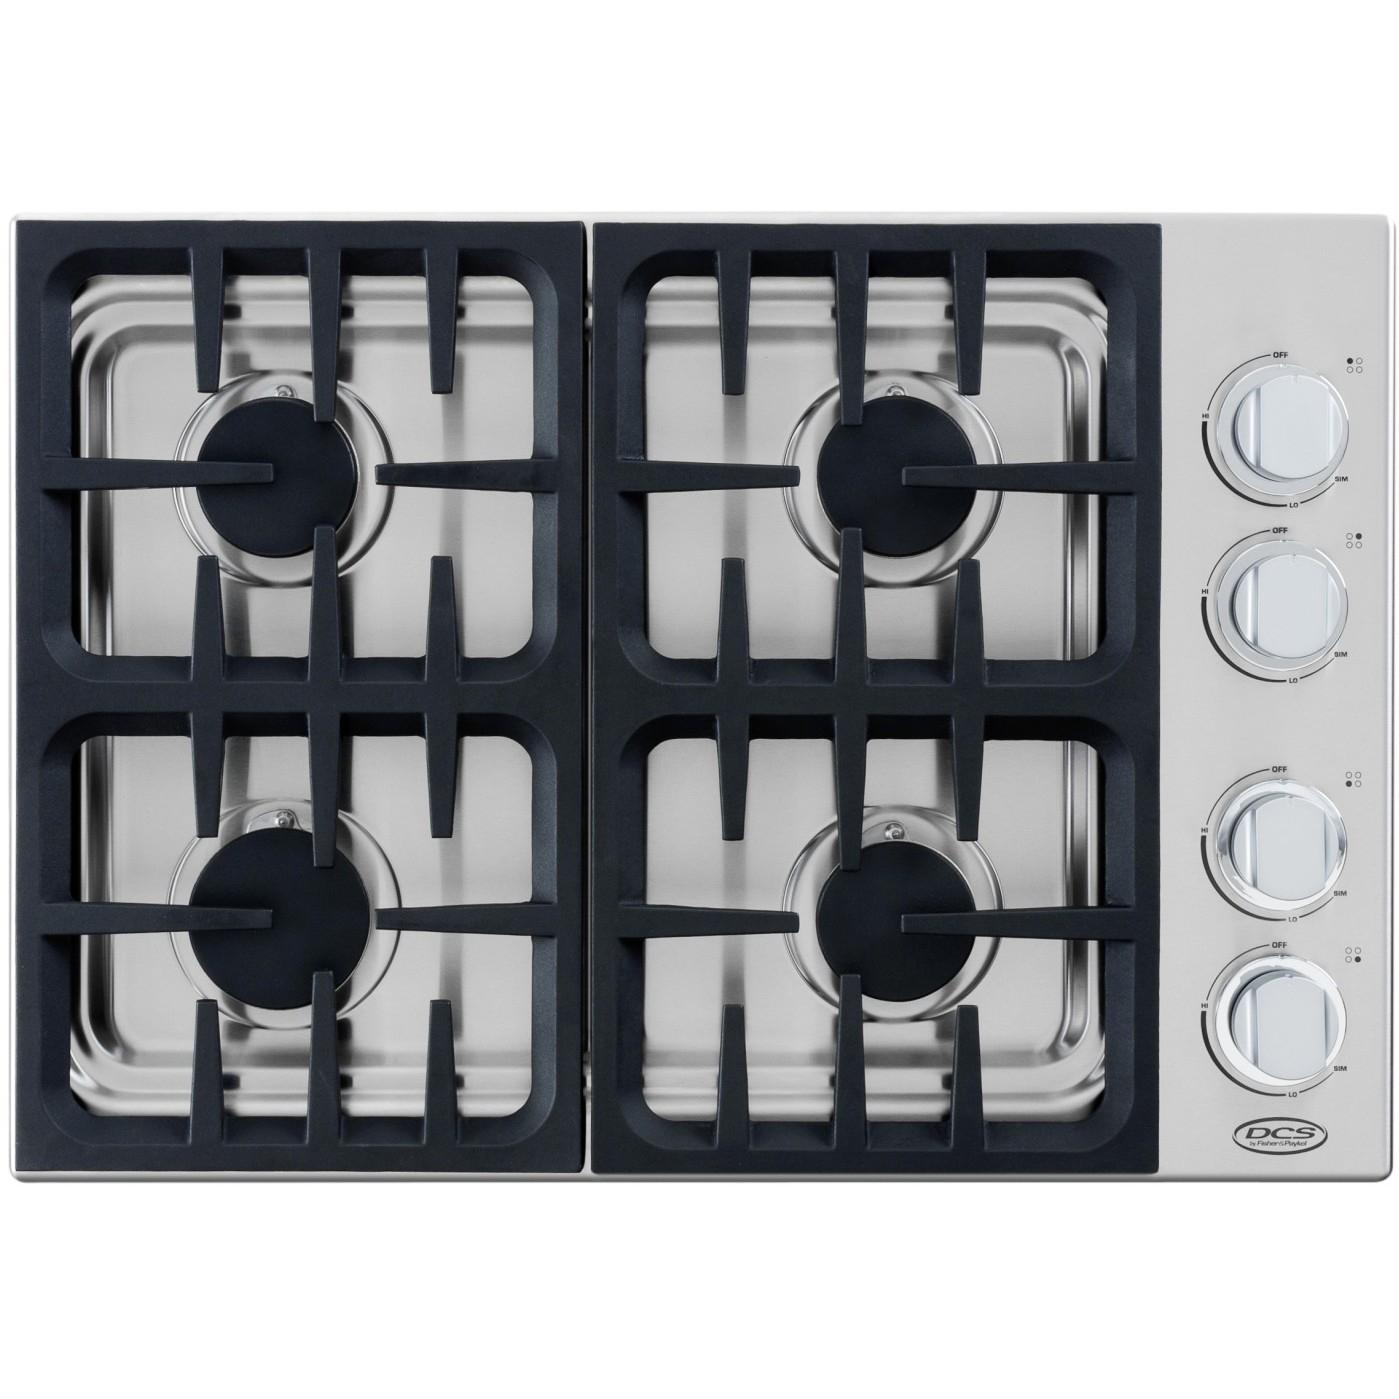 DCS CDU304L 30-Inch Propane Gas Drop-in Cooktop By Fisher Paykel